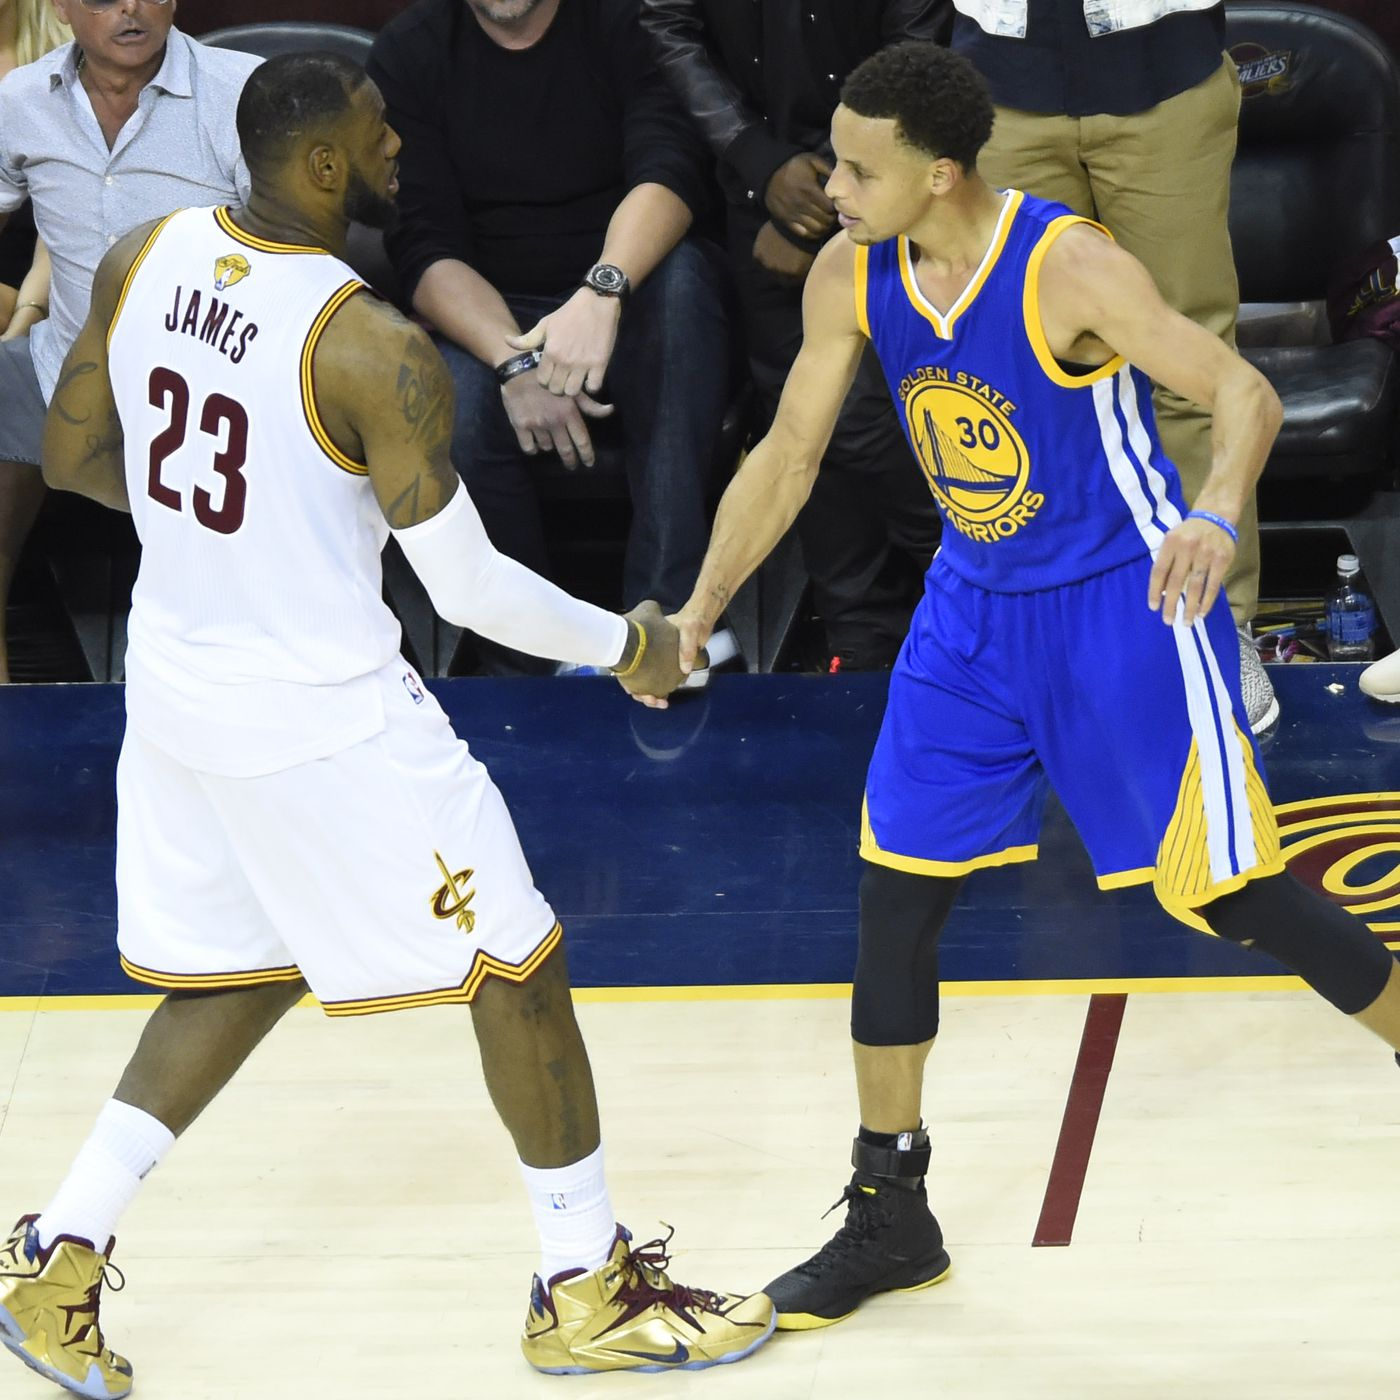 f45aba4aa2e Warriors vs Cavaliers, 2016 NBA Finals Game 1 preview: The rematch ...